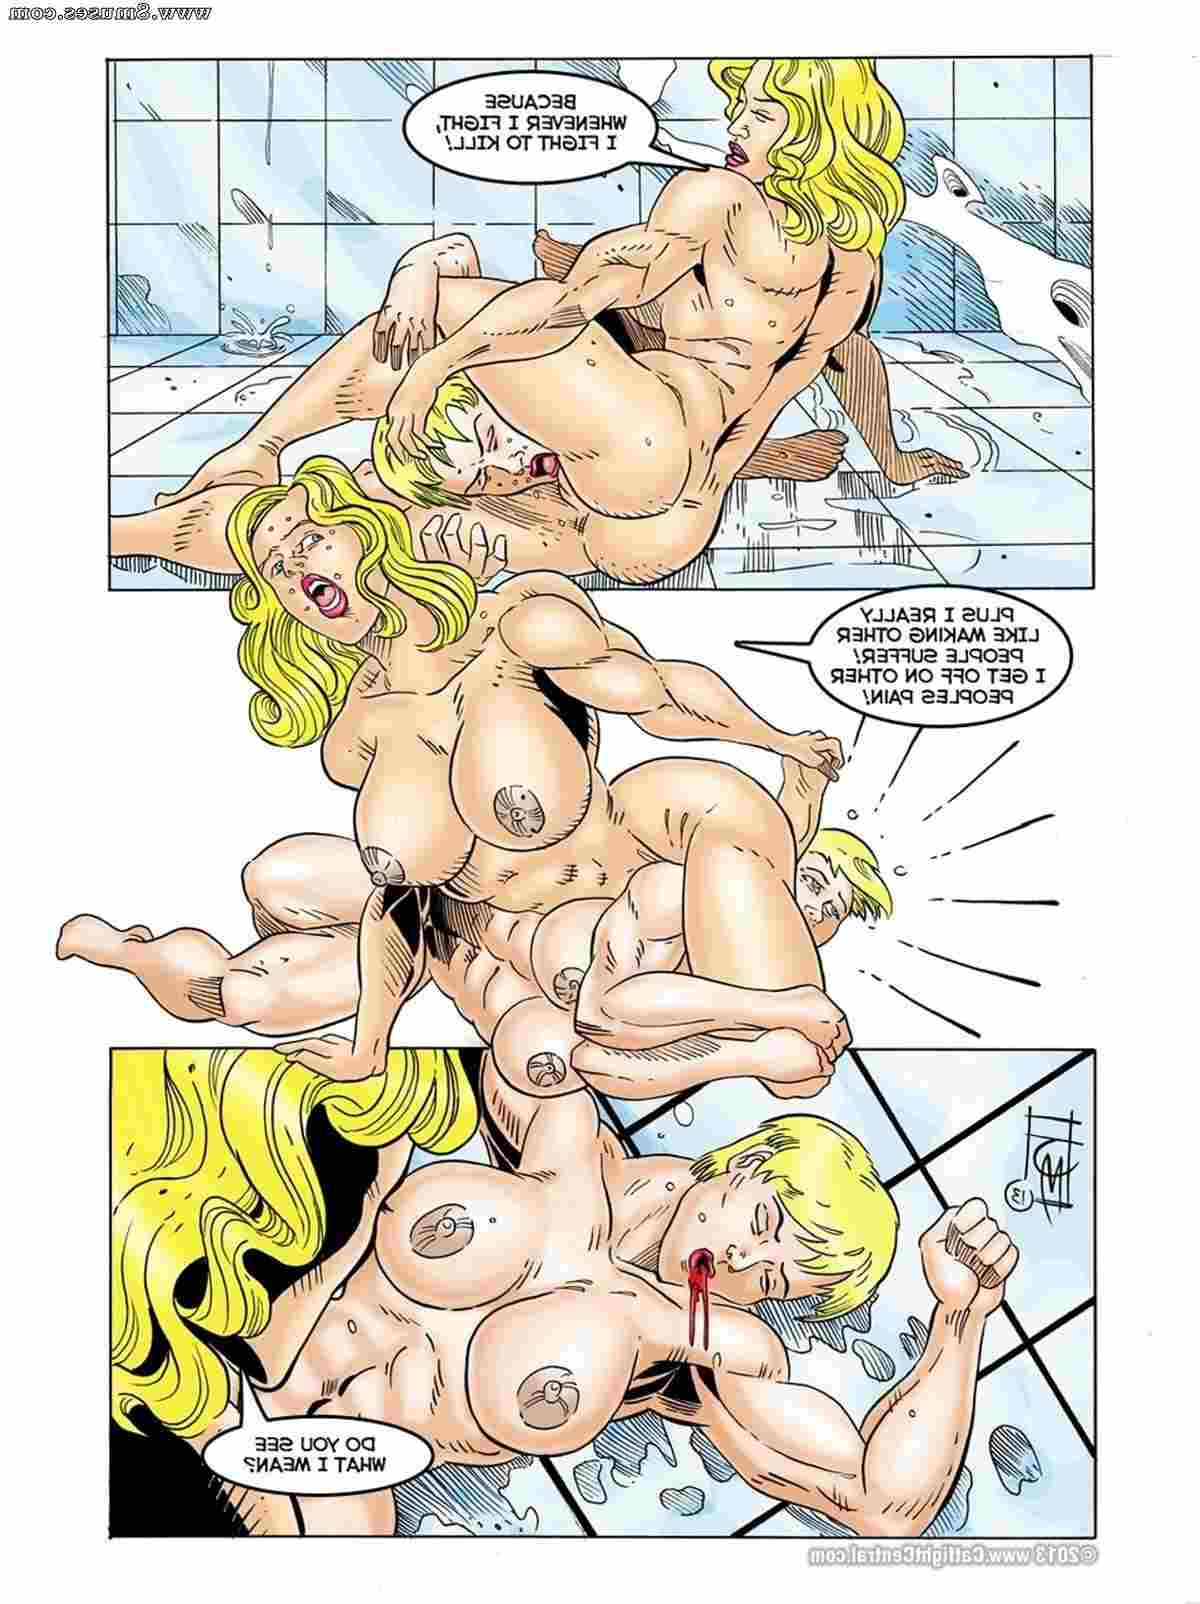 Central-Comics/Catfight-Central/Prison-Bitches Prison_Bitches__8muses_-_Sex_and_Porn_Comics_54.jpg